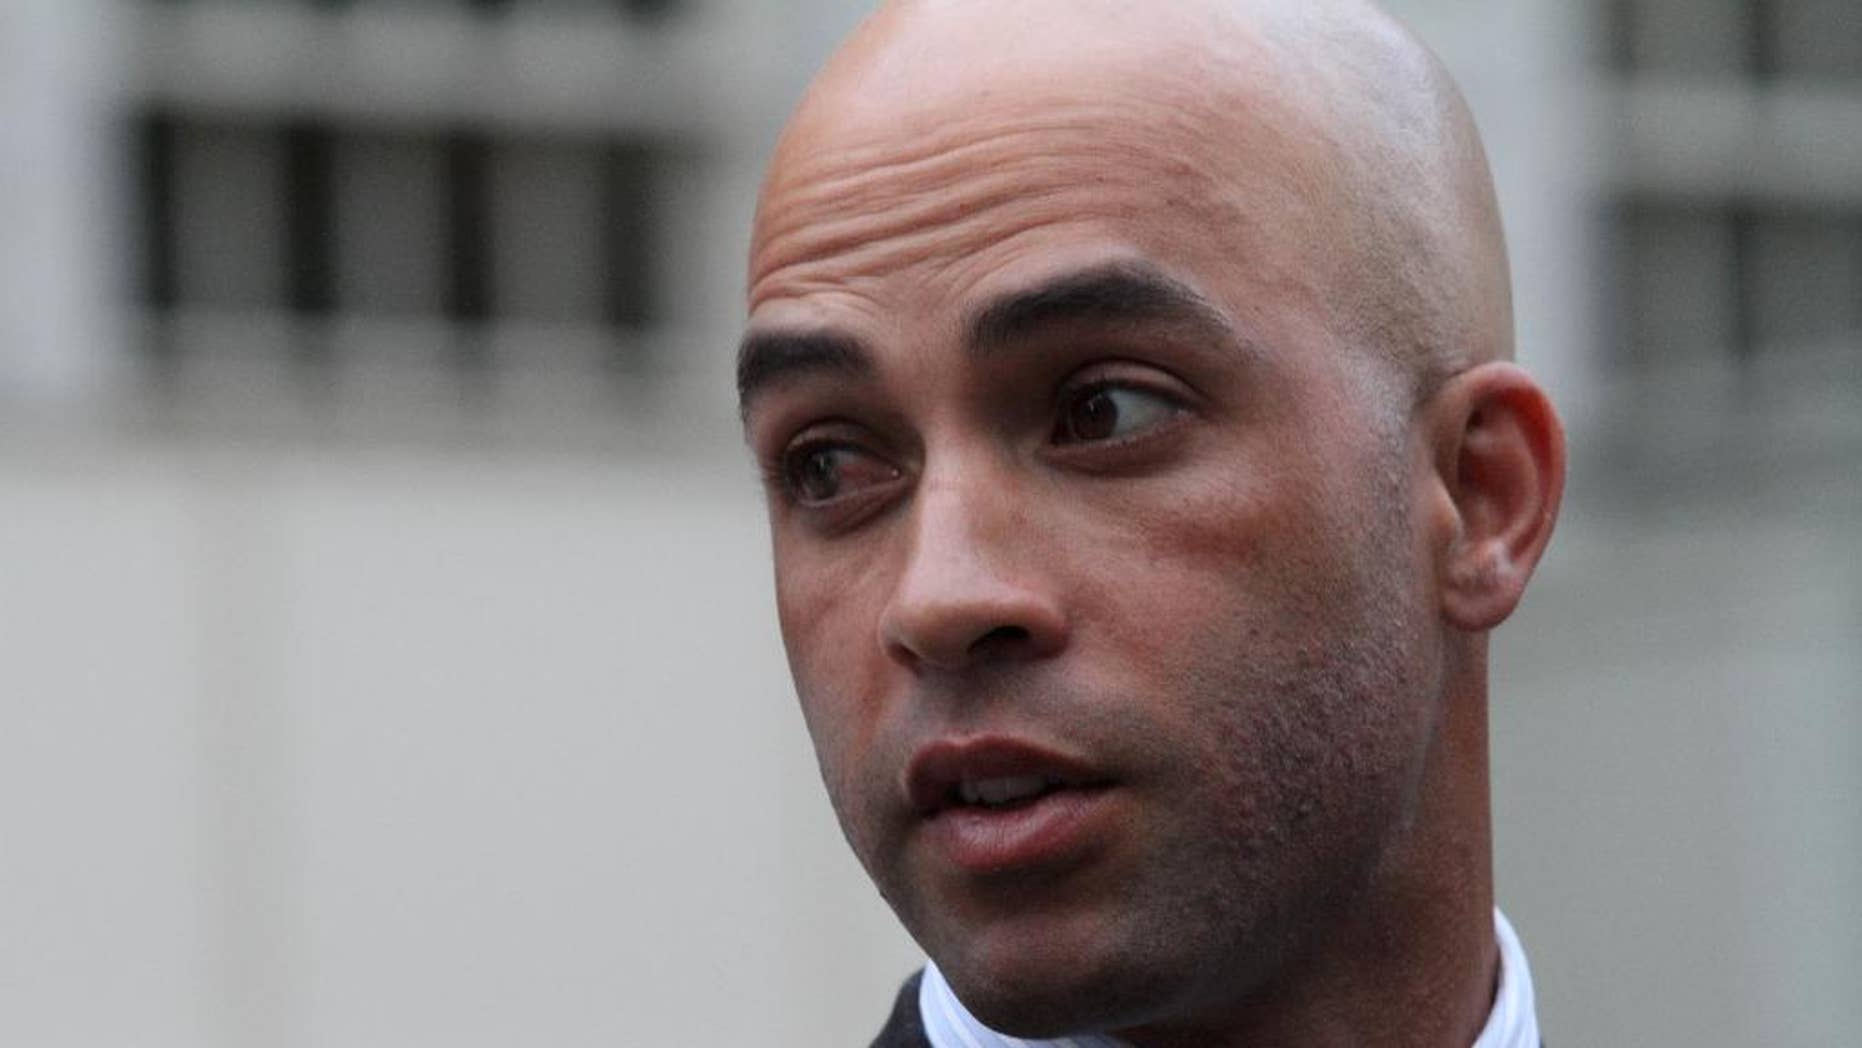 James Blake, center left, talks to members of the media outside City Hall in New York after leaving the building Monday, Sept. 21, 2015. Blake, a former tennis star, was tackled during a mistaken arrest by a New York City police officer on Sept. 9. (AP Photo/Tina Fineberg)